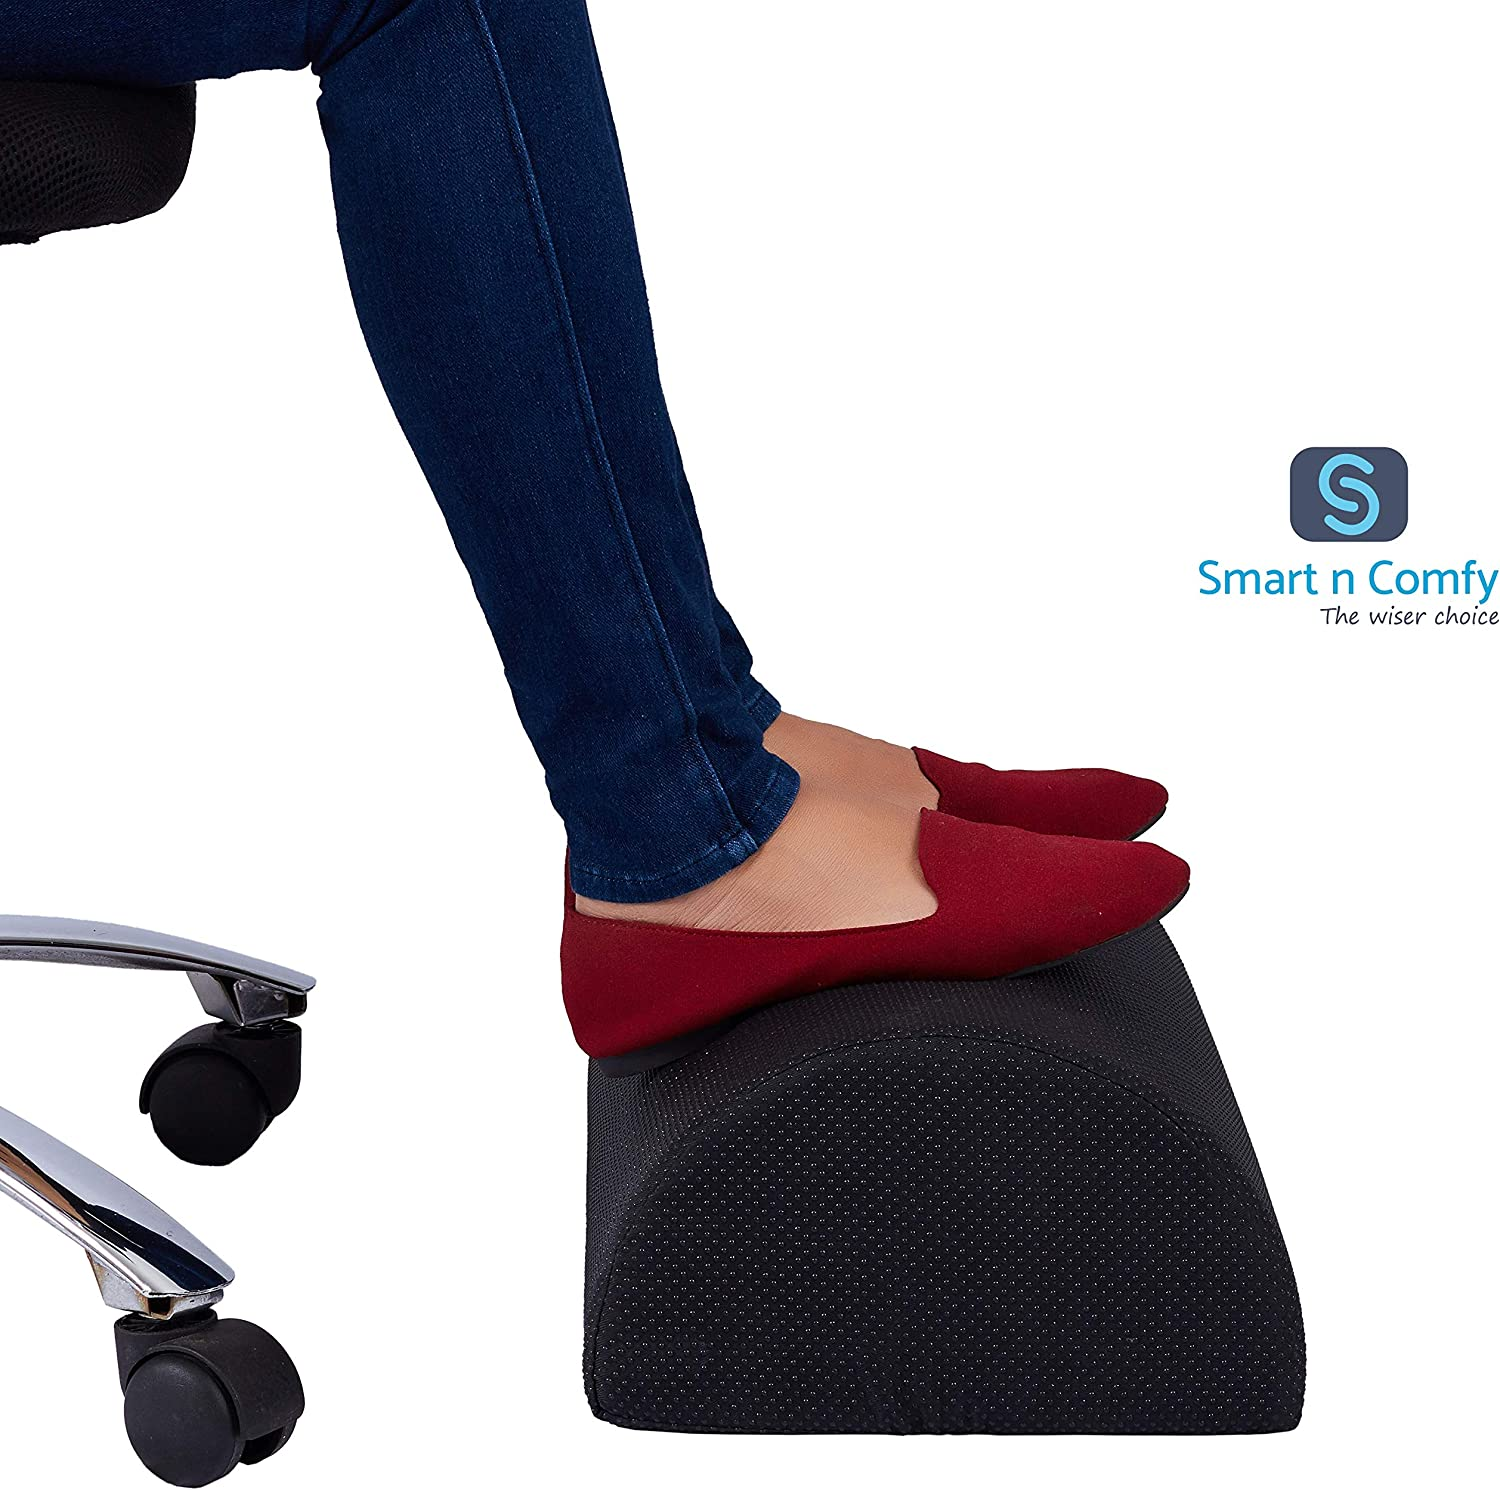 Foot Rest Cushion to Relieve Knee Pain, Tired, Aching & Sore Feet. Reduce Deep Vein Thrombosis. Ideal for Office and Home. Anti Slip Cover.